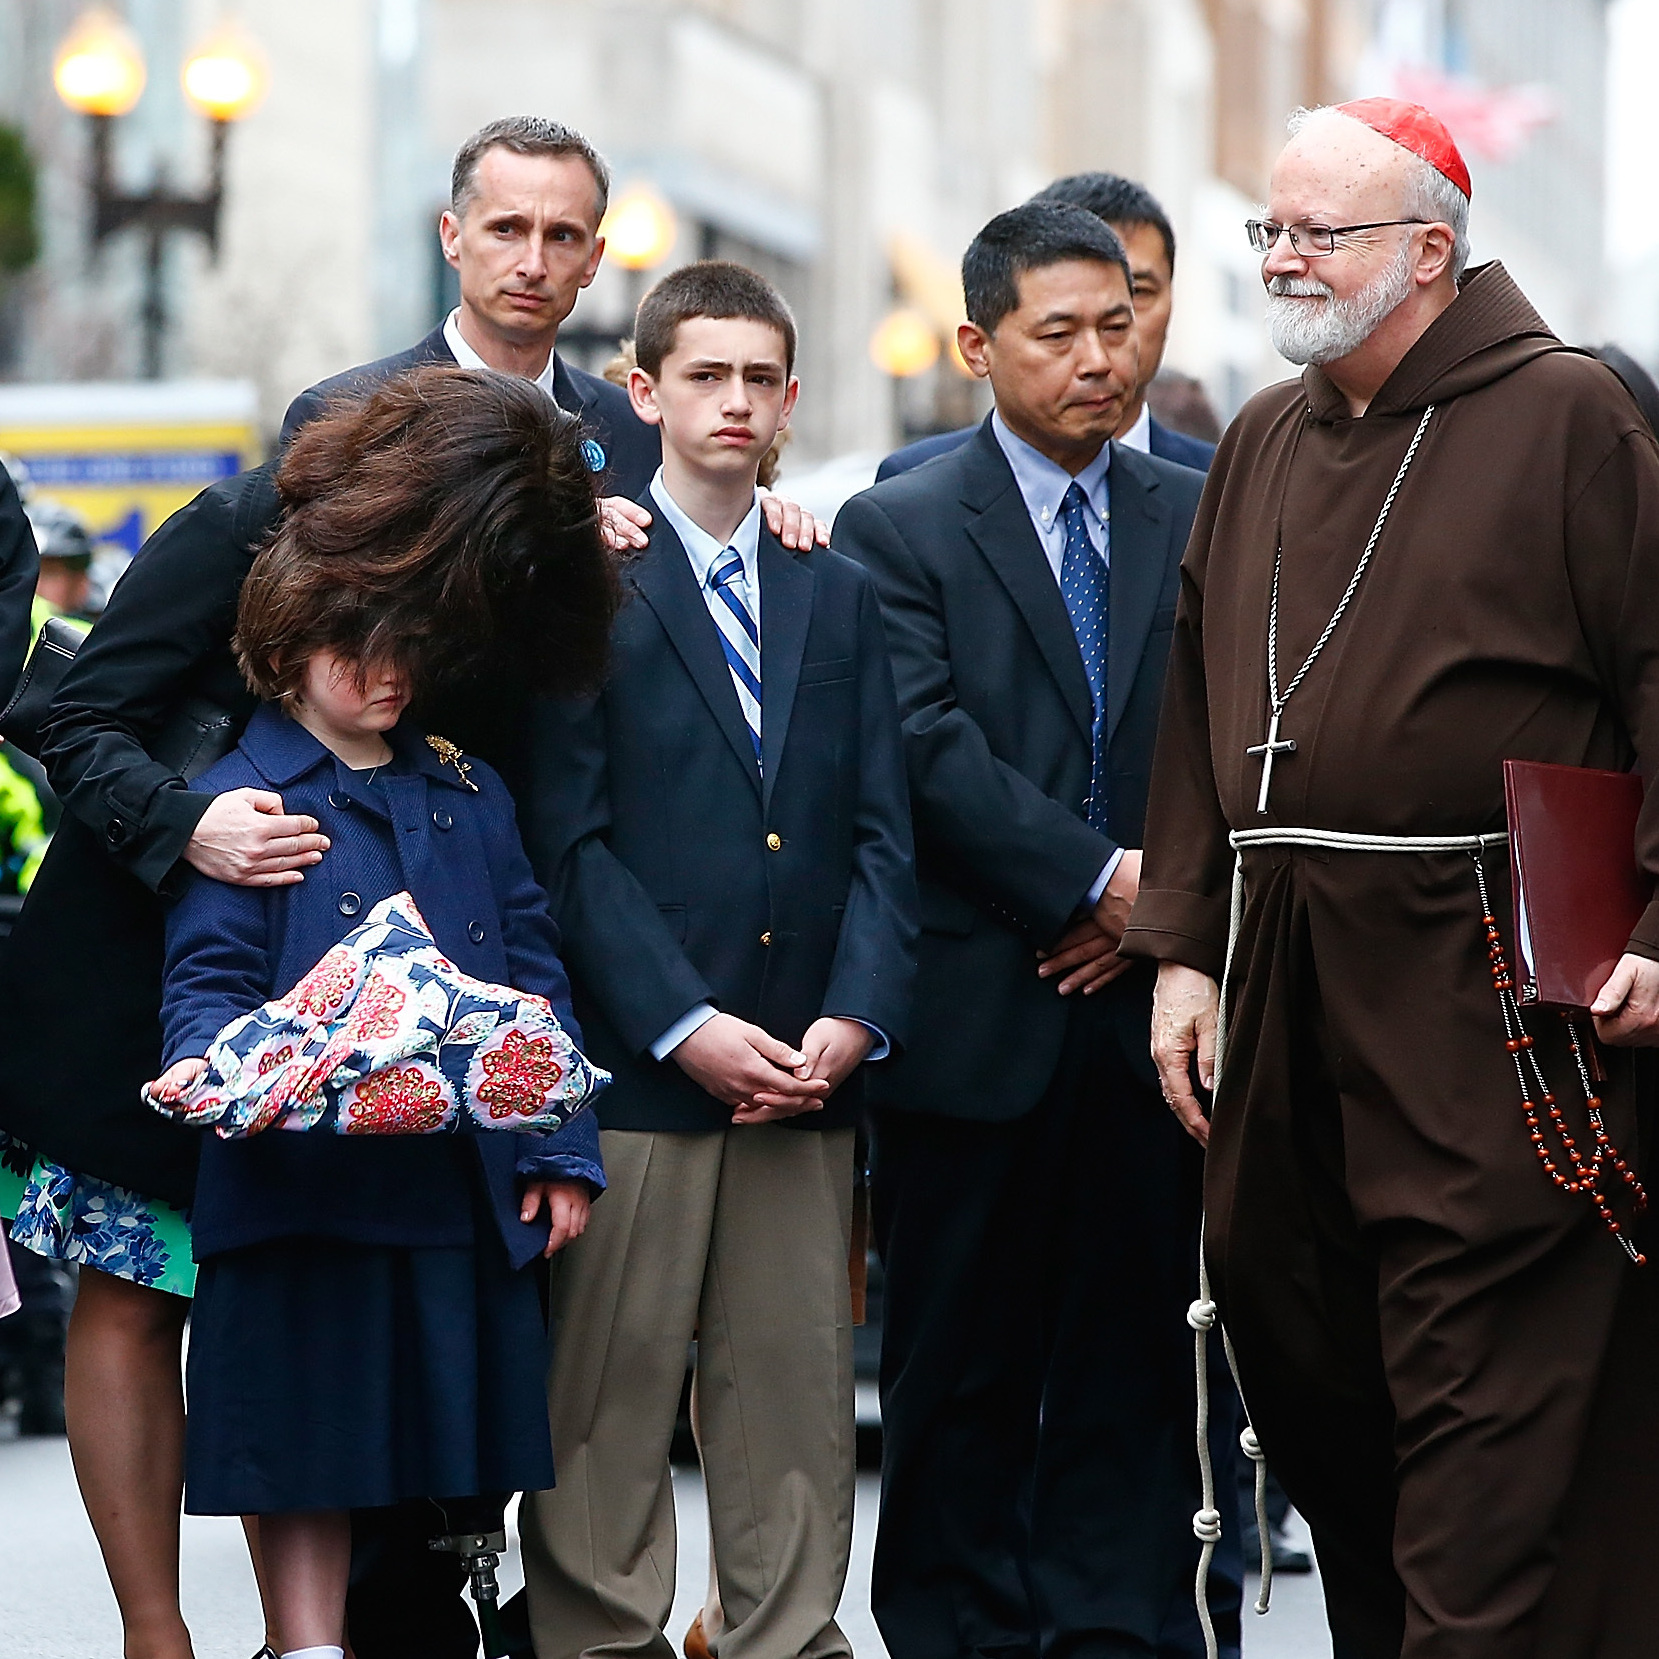 One year after the Boston Marathon bombings, families of the victims, including relatives of Martin Richard, attended a wreath-laying ceremony on Boylston Street along with Mayor Martin Walsh (left) and Cardinal Sean Patrick O'Malley (right).